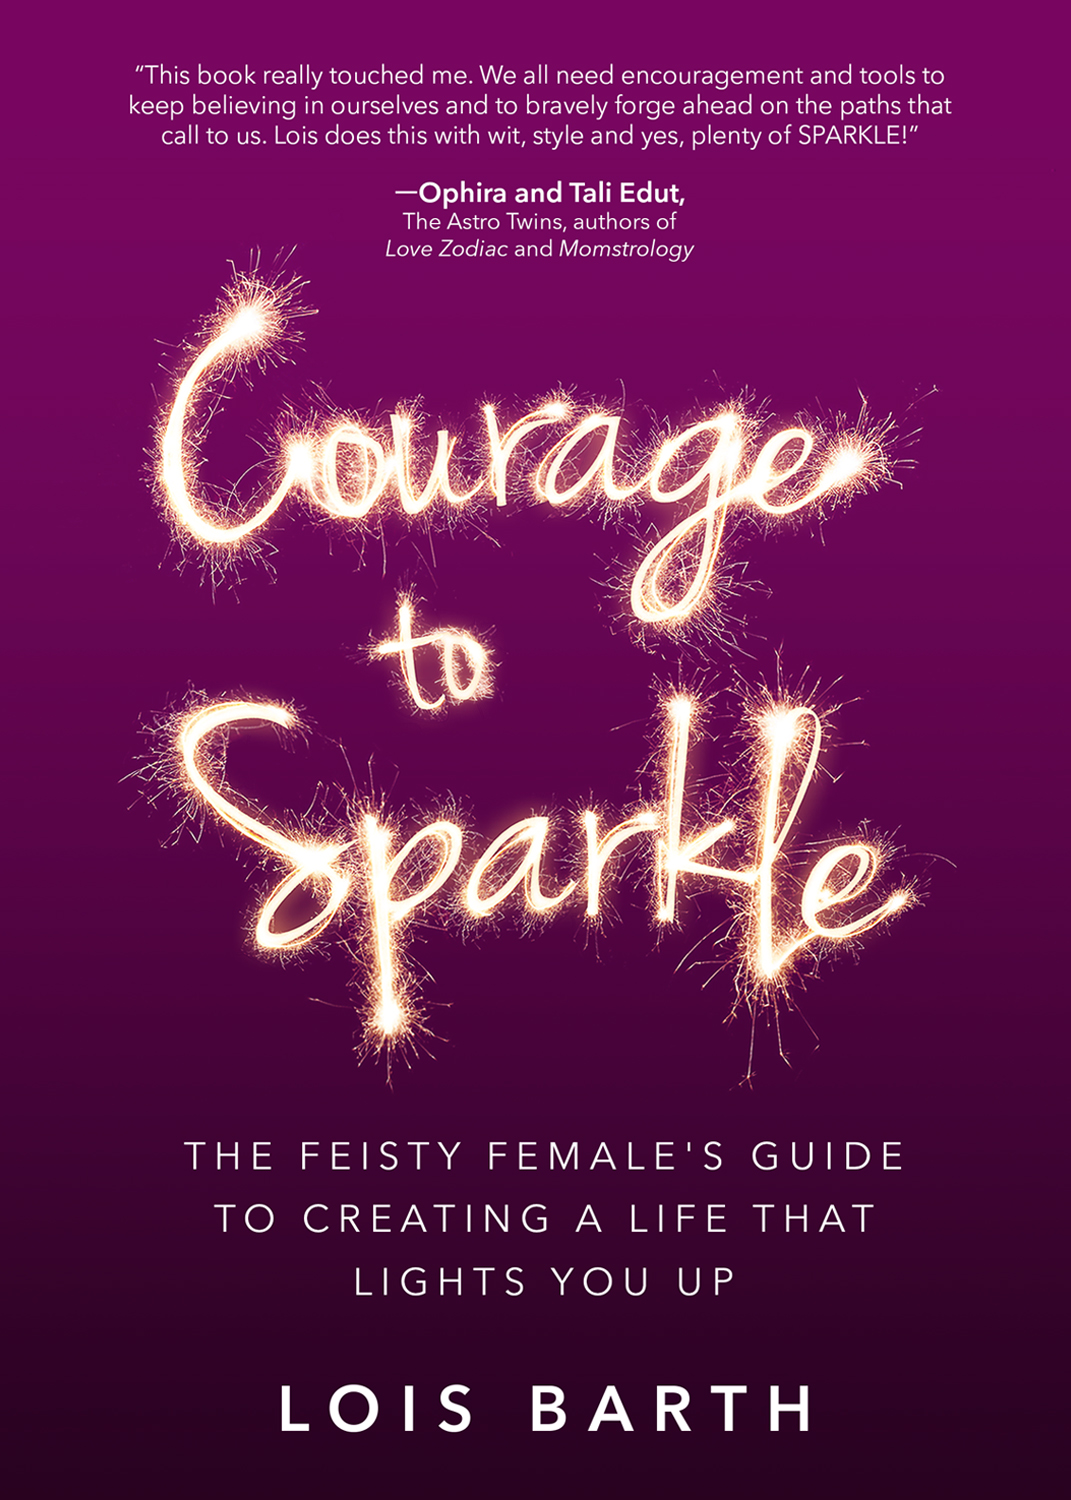 Courage to Sparkle